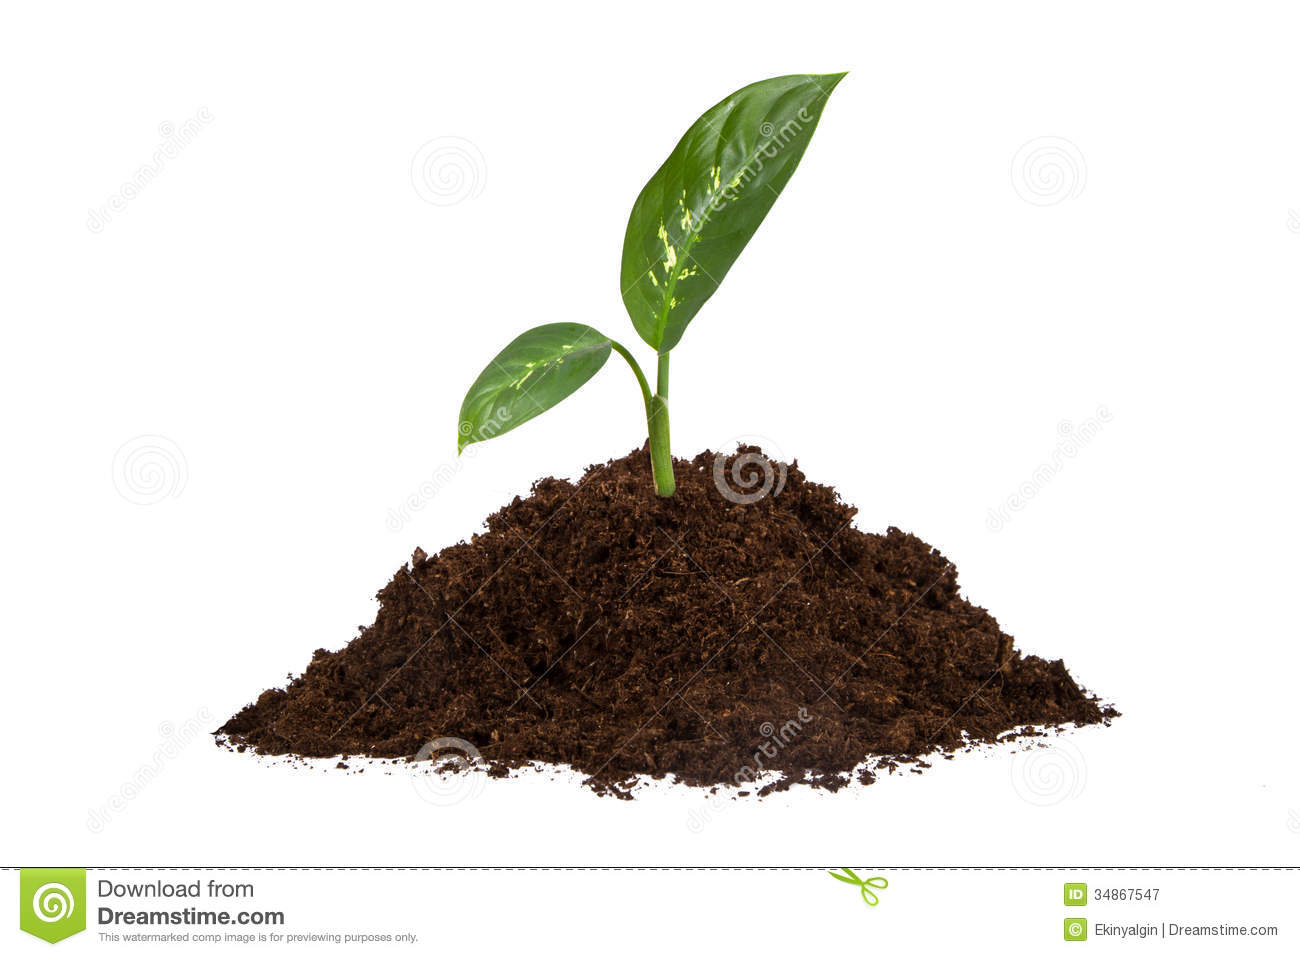 Dirt pile grass clipart clipart panda free clipart for Soil clipart